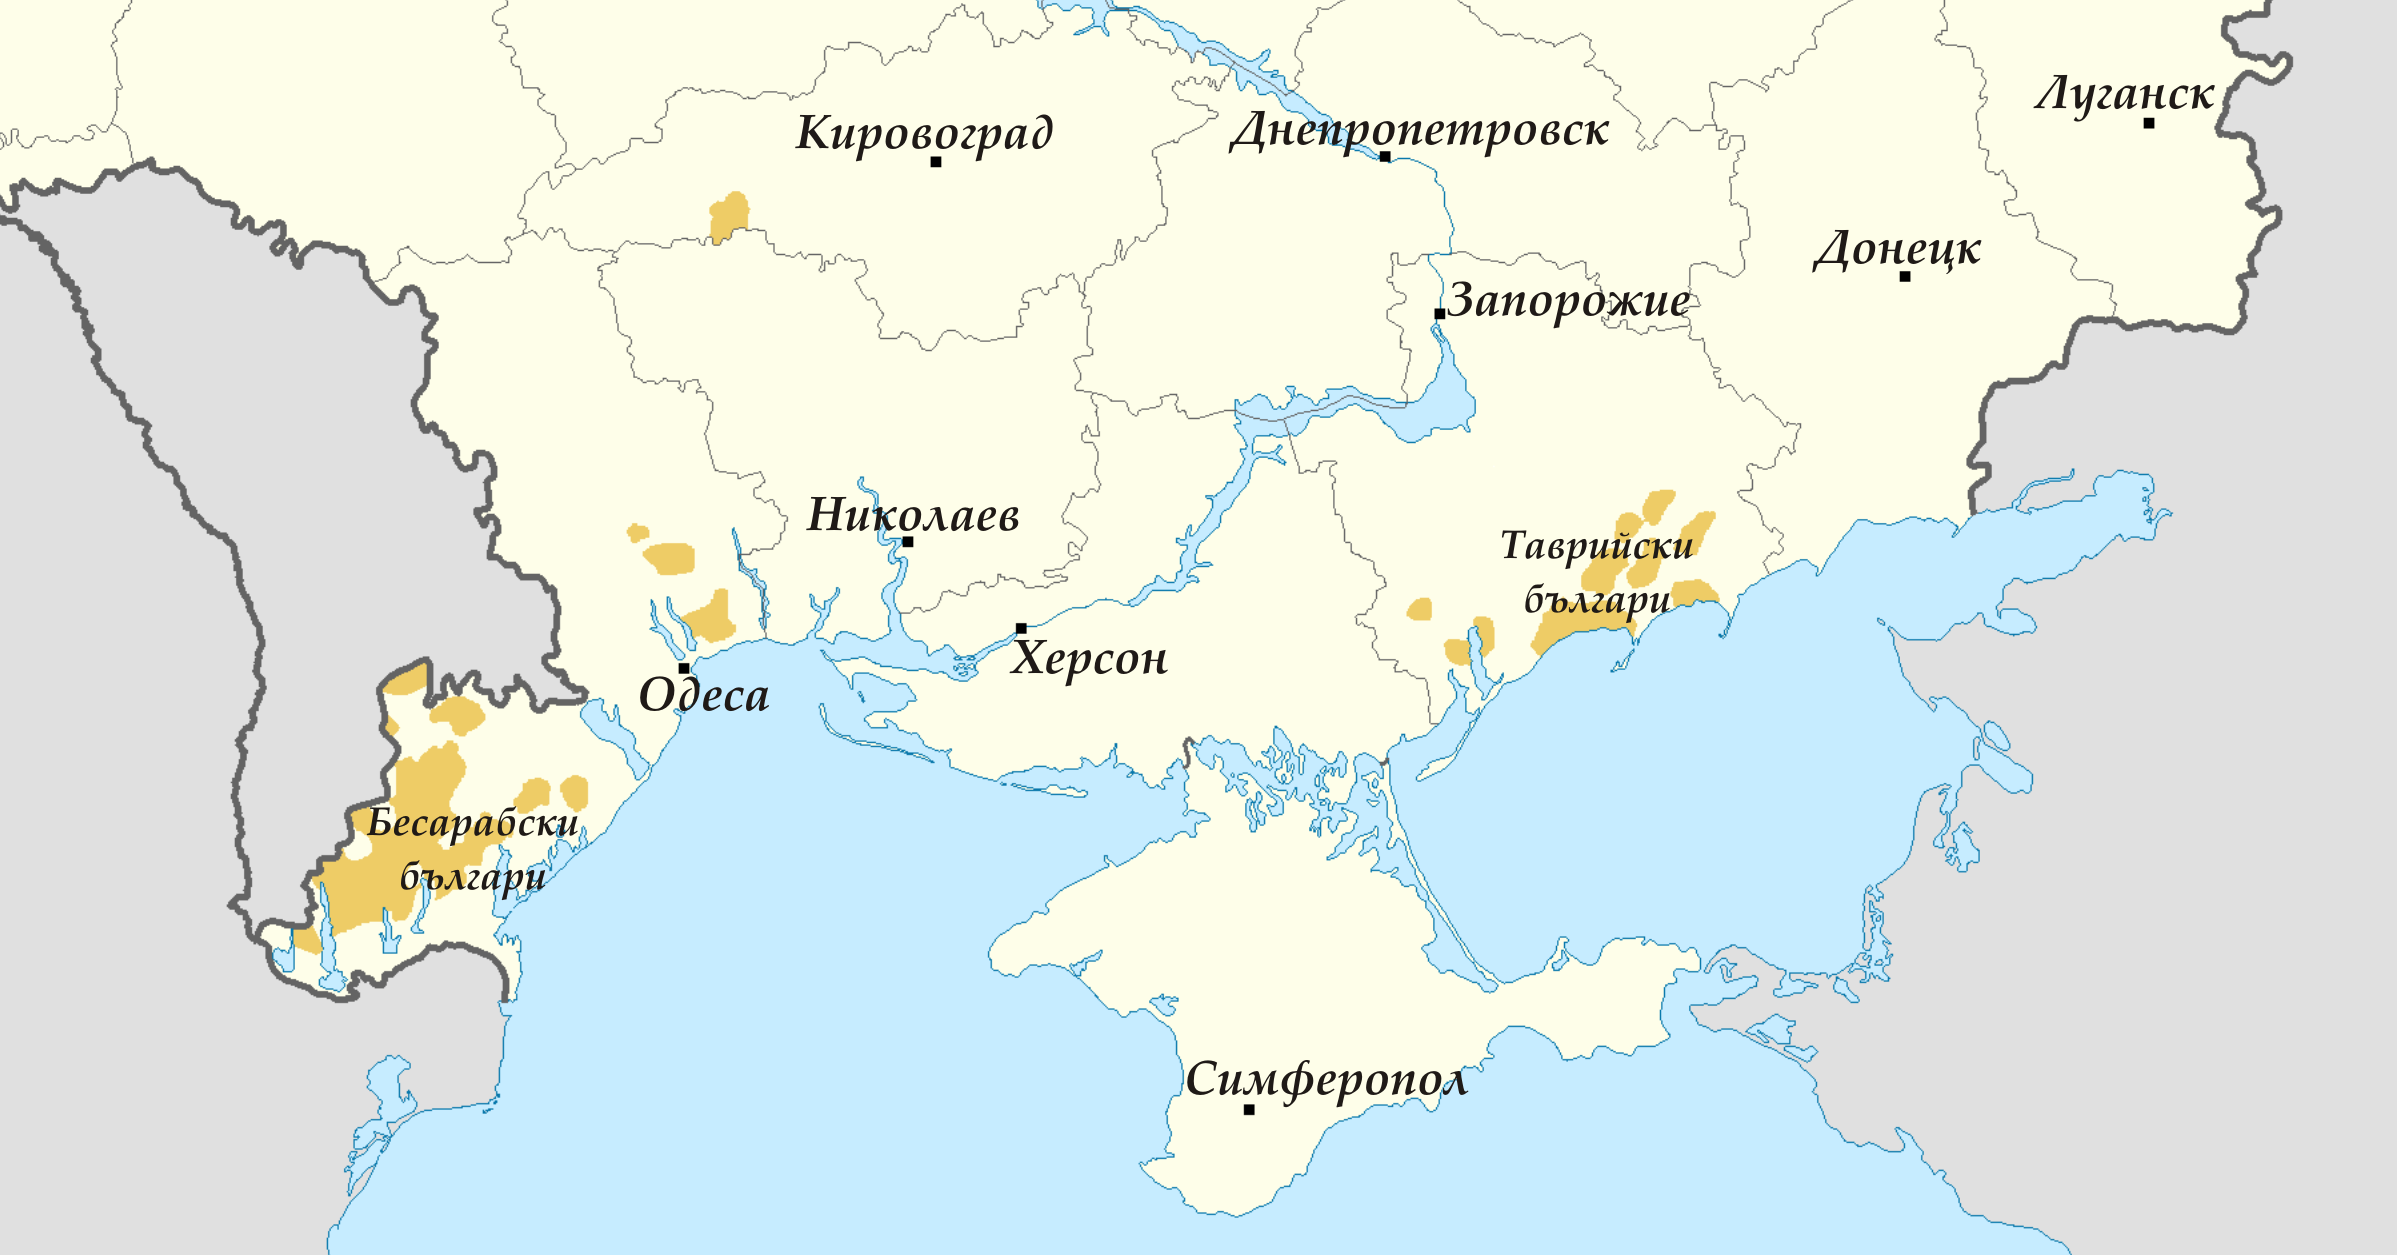 Bulgarians in Ukraine